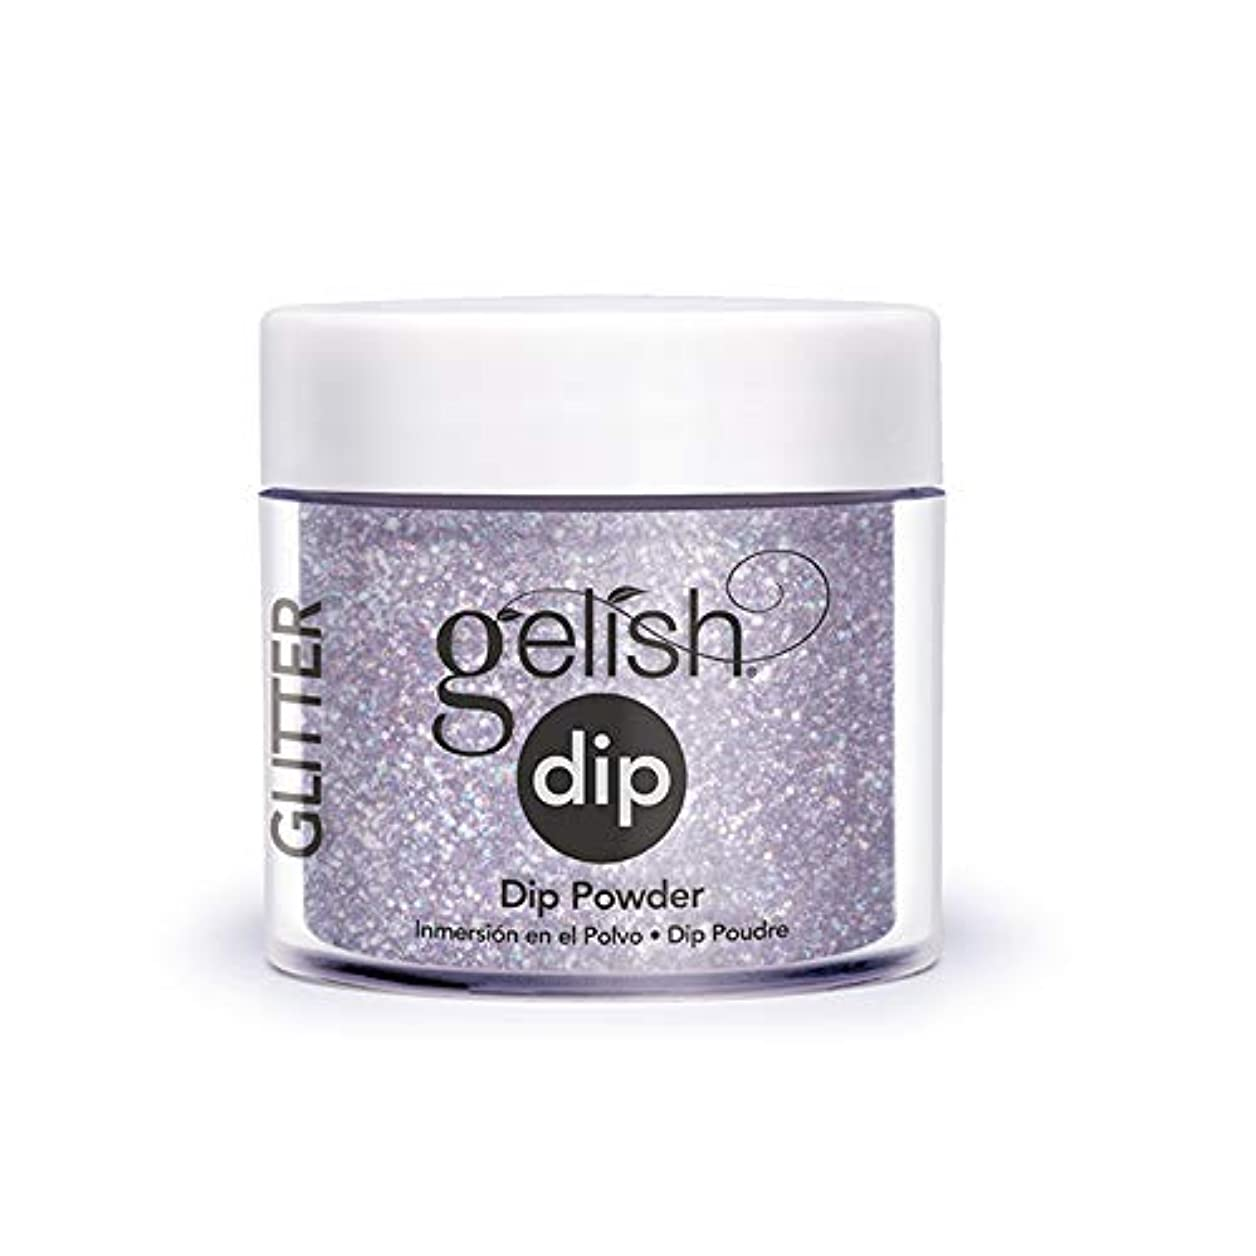 エンジニアリング料理をする子羊Harmony Gelish - Acrylic Dip Powder - Let Them Eat Cake - 23g / 0.8oz